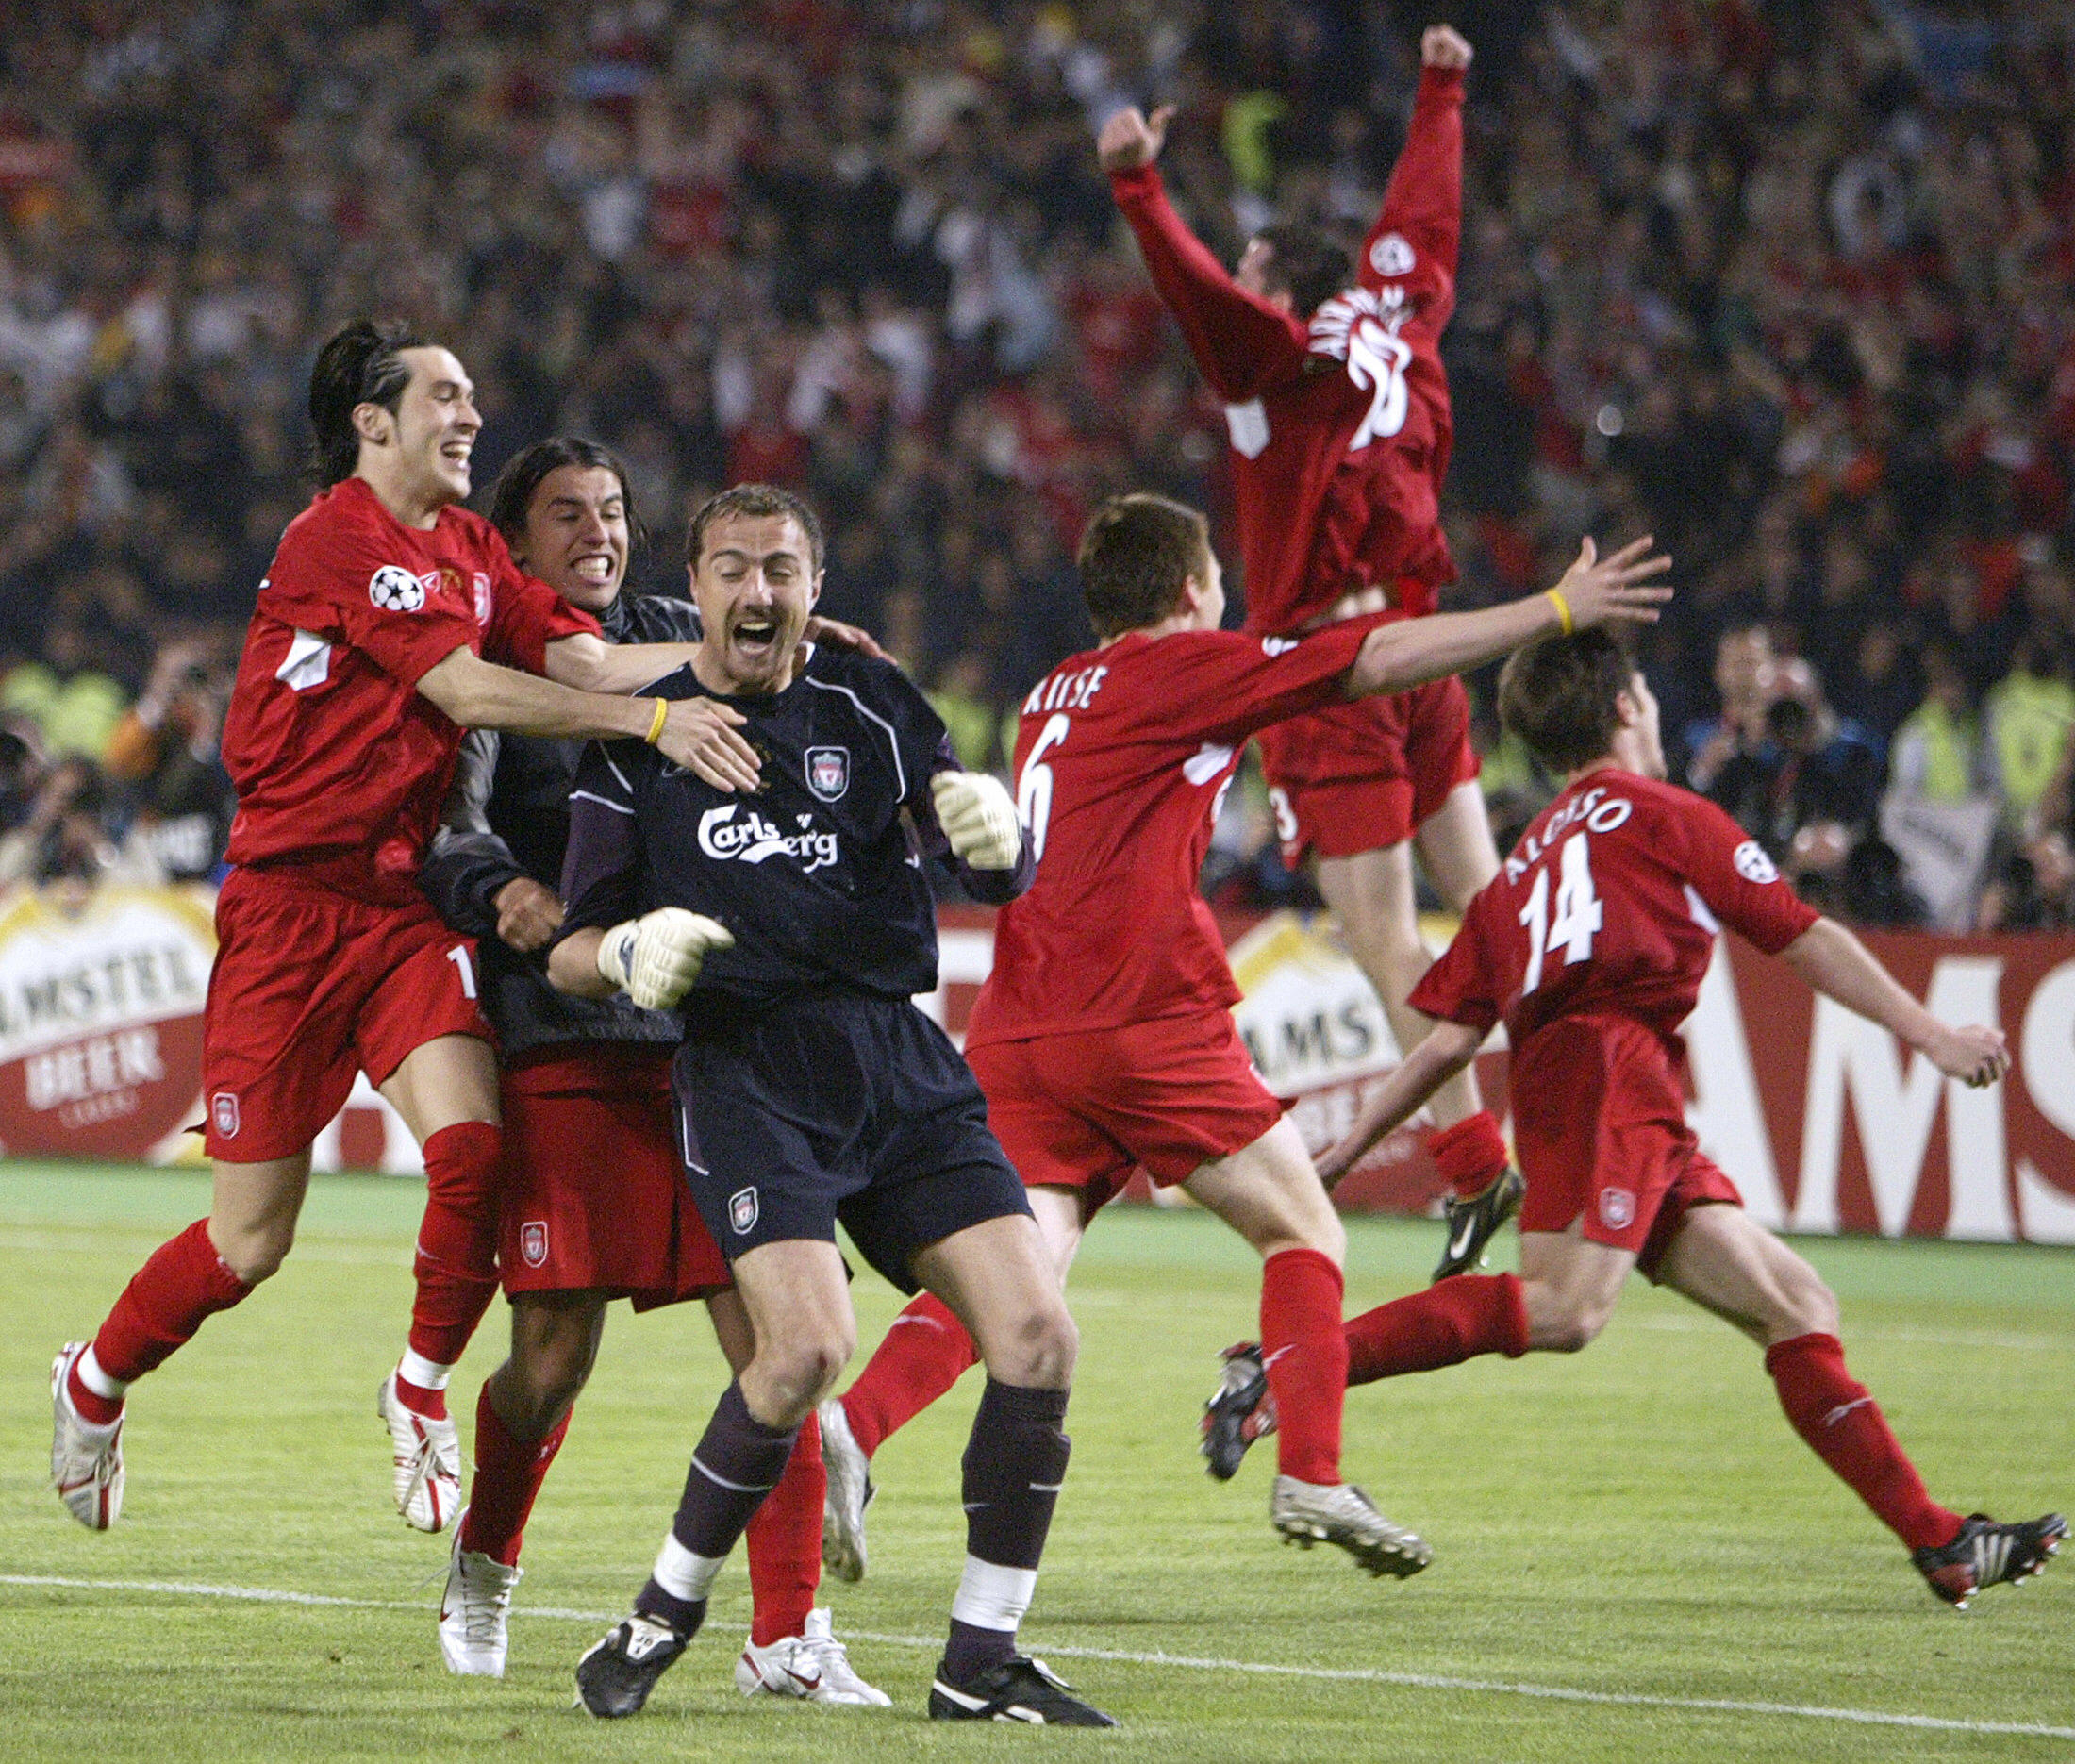 Liverpool vs. AC Milan: 'Something unreal happened' in 2005 Champions League final